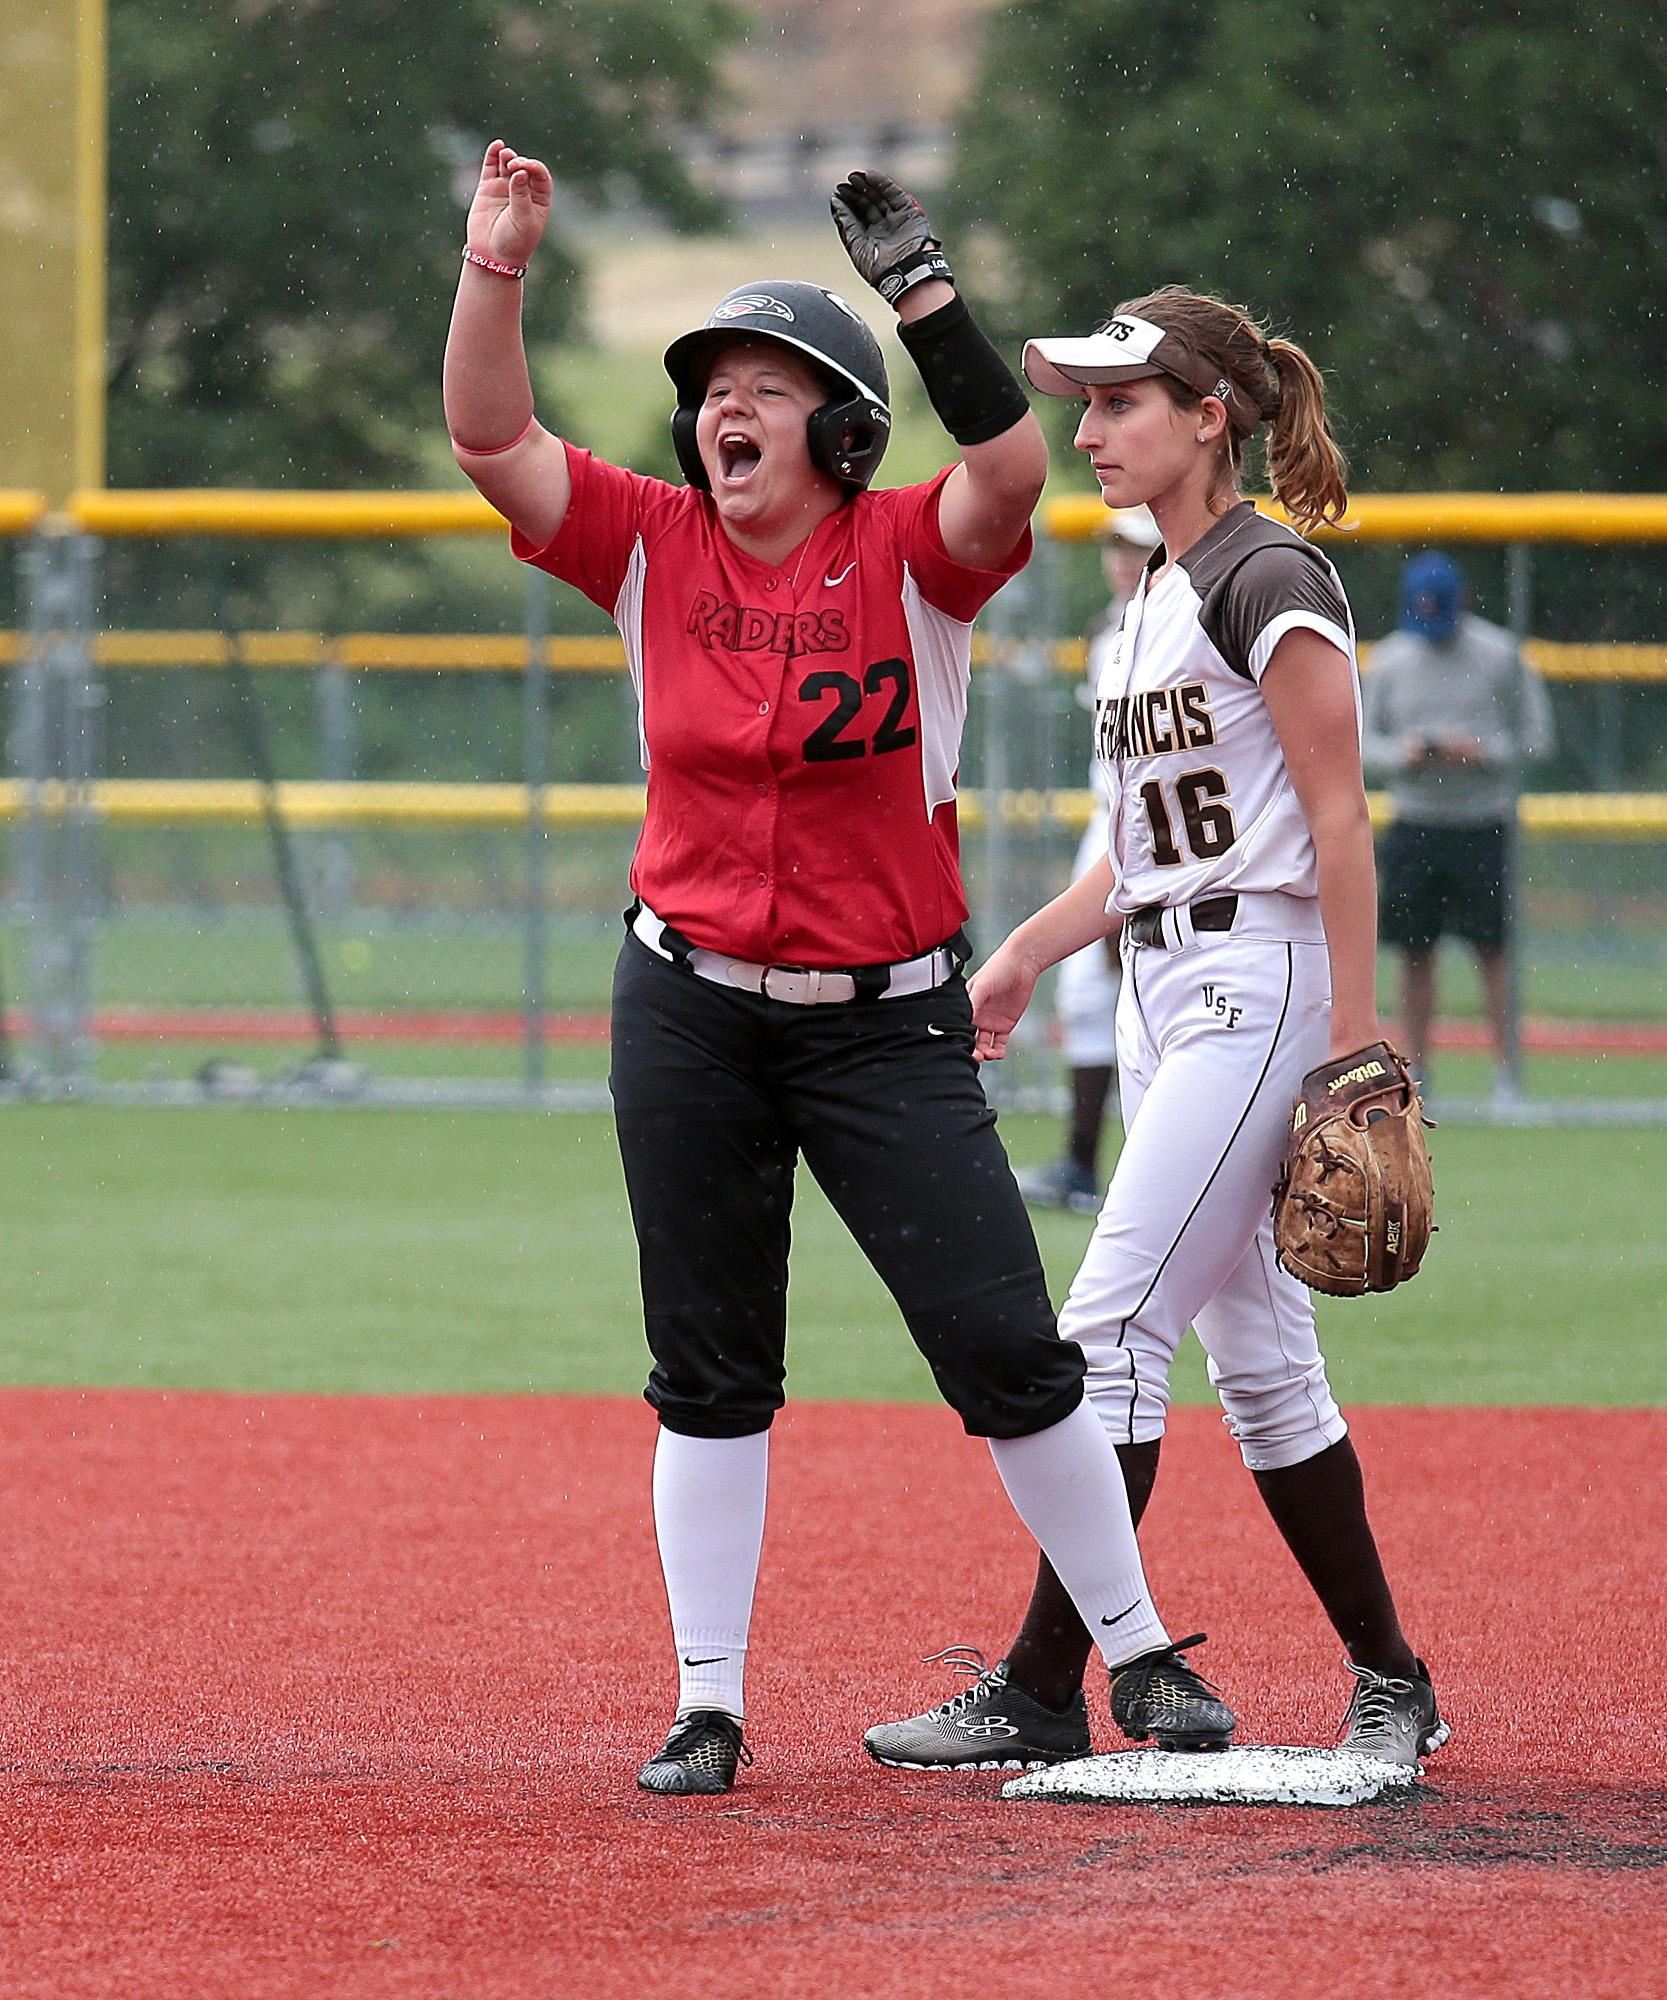 Southern Oregon University sophomore Karlee Coughlin celebrates from second base, after hitting a two-RBI double against St. Francis at US Cellular Community Park on Wednesday.[PHOTO BY:  LARRY STAUTH JR]